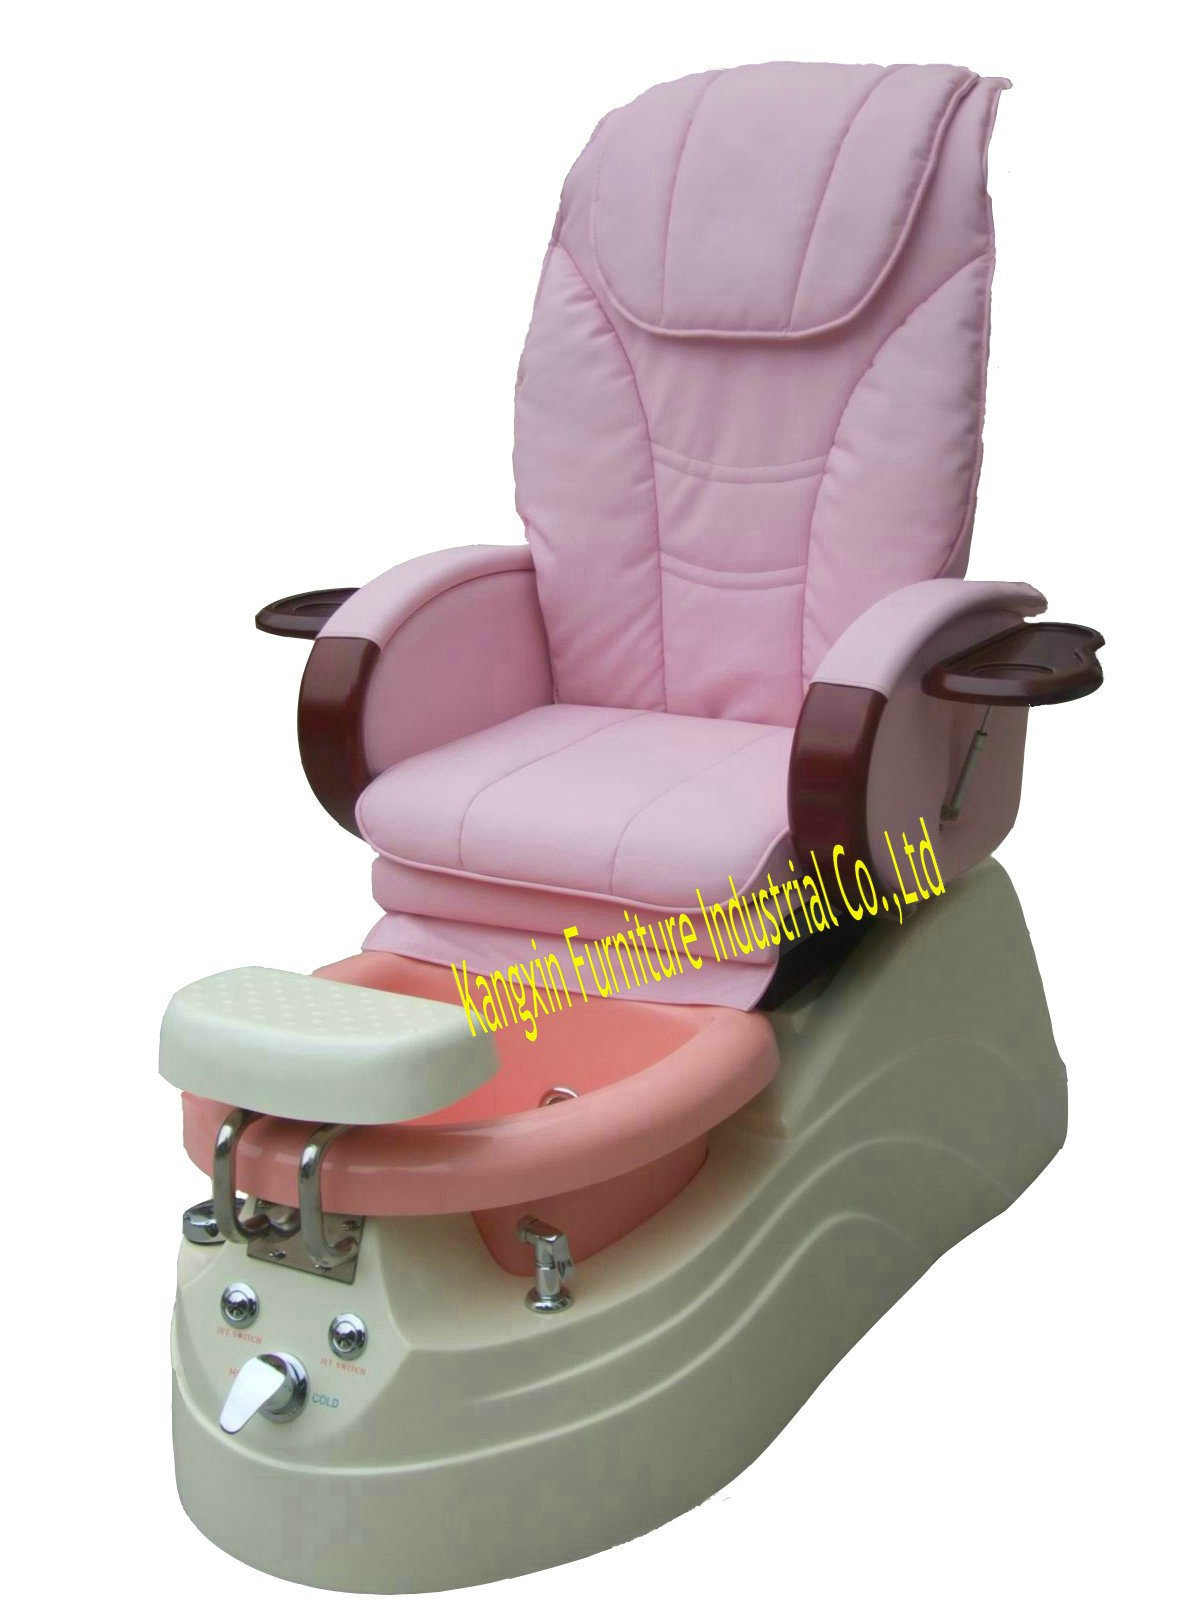 Luxury full-body relaxing Salon spa massage pedicure chair for any belle, with manicure tray,7color LED lamp,soft whirlpool(China (Mainland))